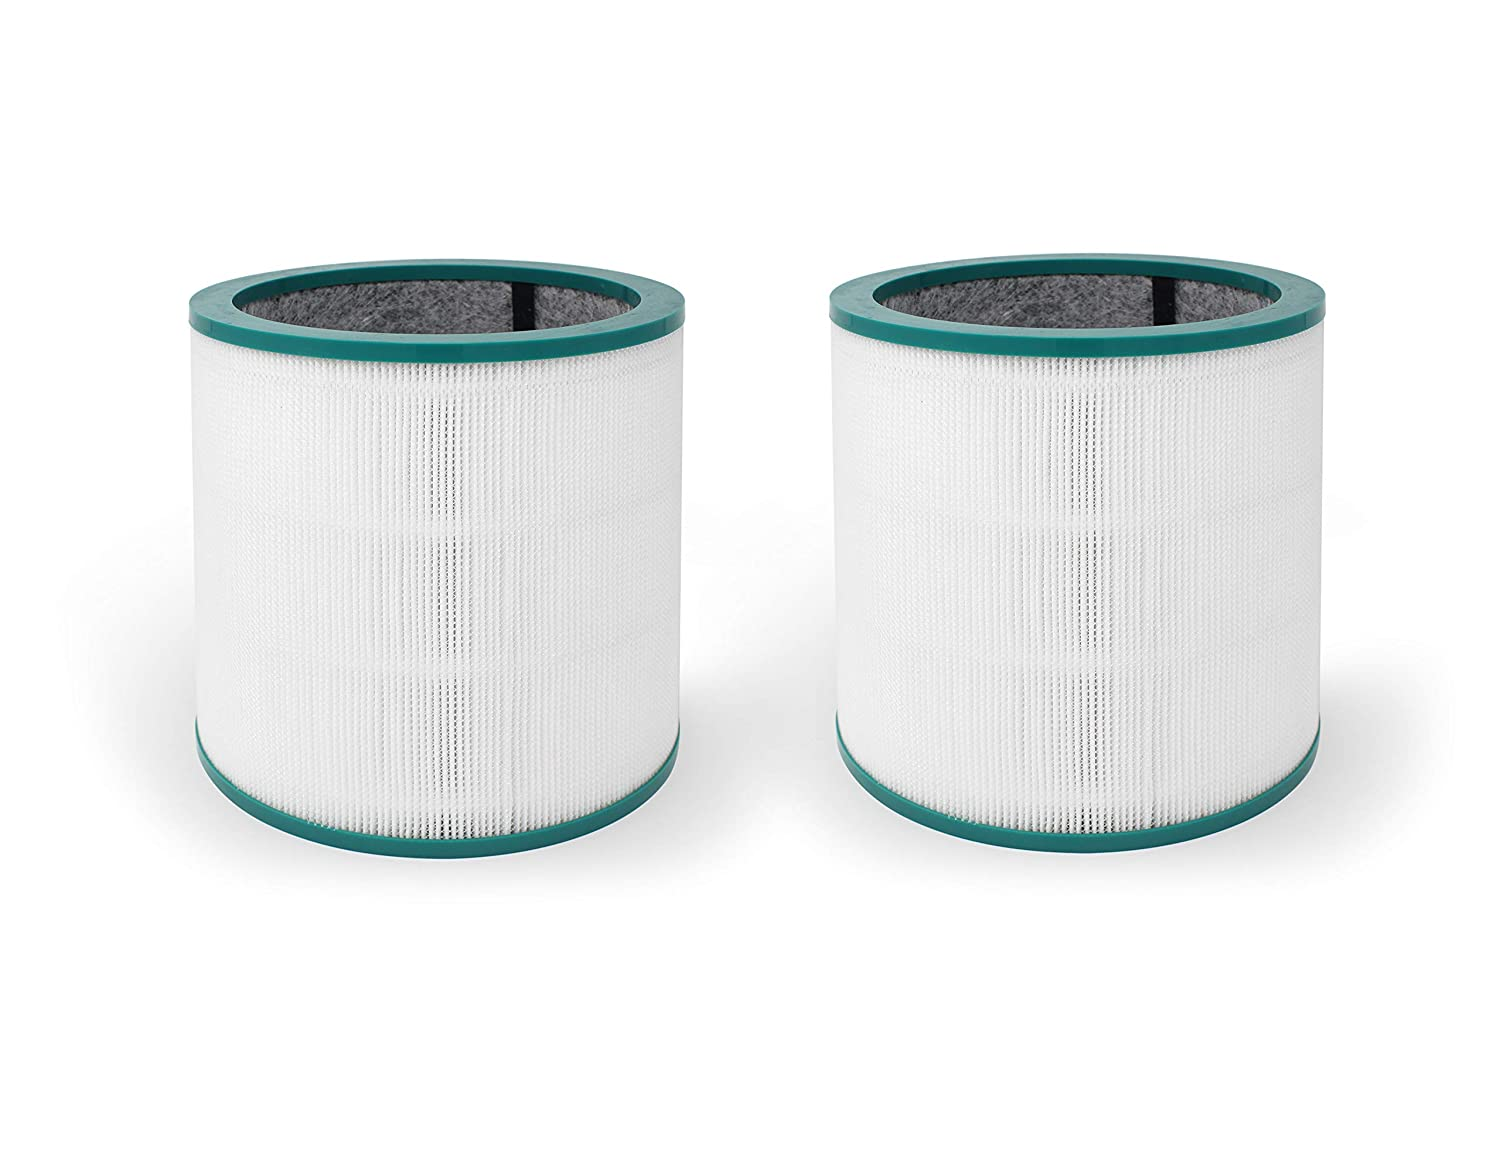 Fette Filter - Air Purifier Filter Compatible with Dyson Tower Purifier for TP02 & TP03 Models. Compare to Part # 968126-03. (Pack of 2)